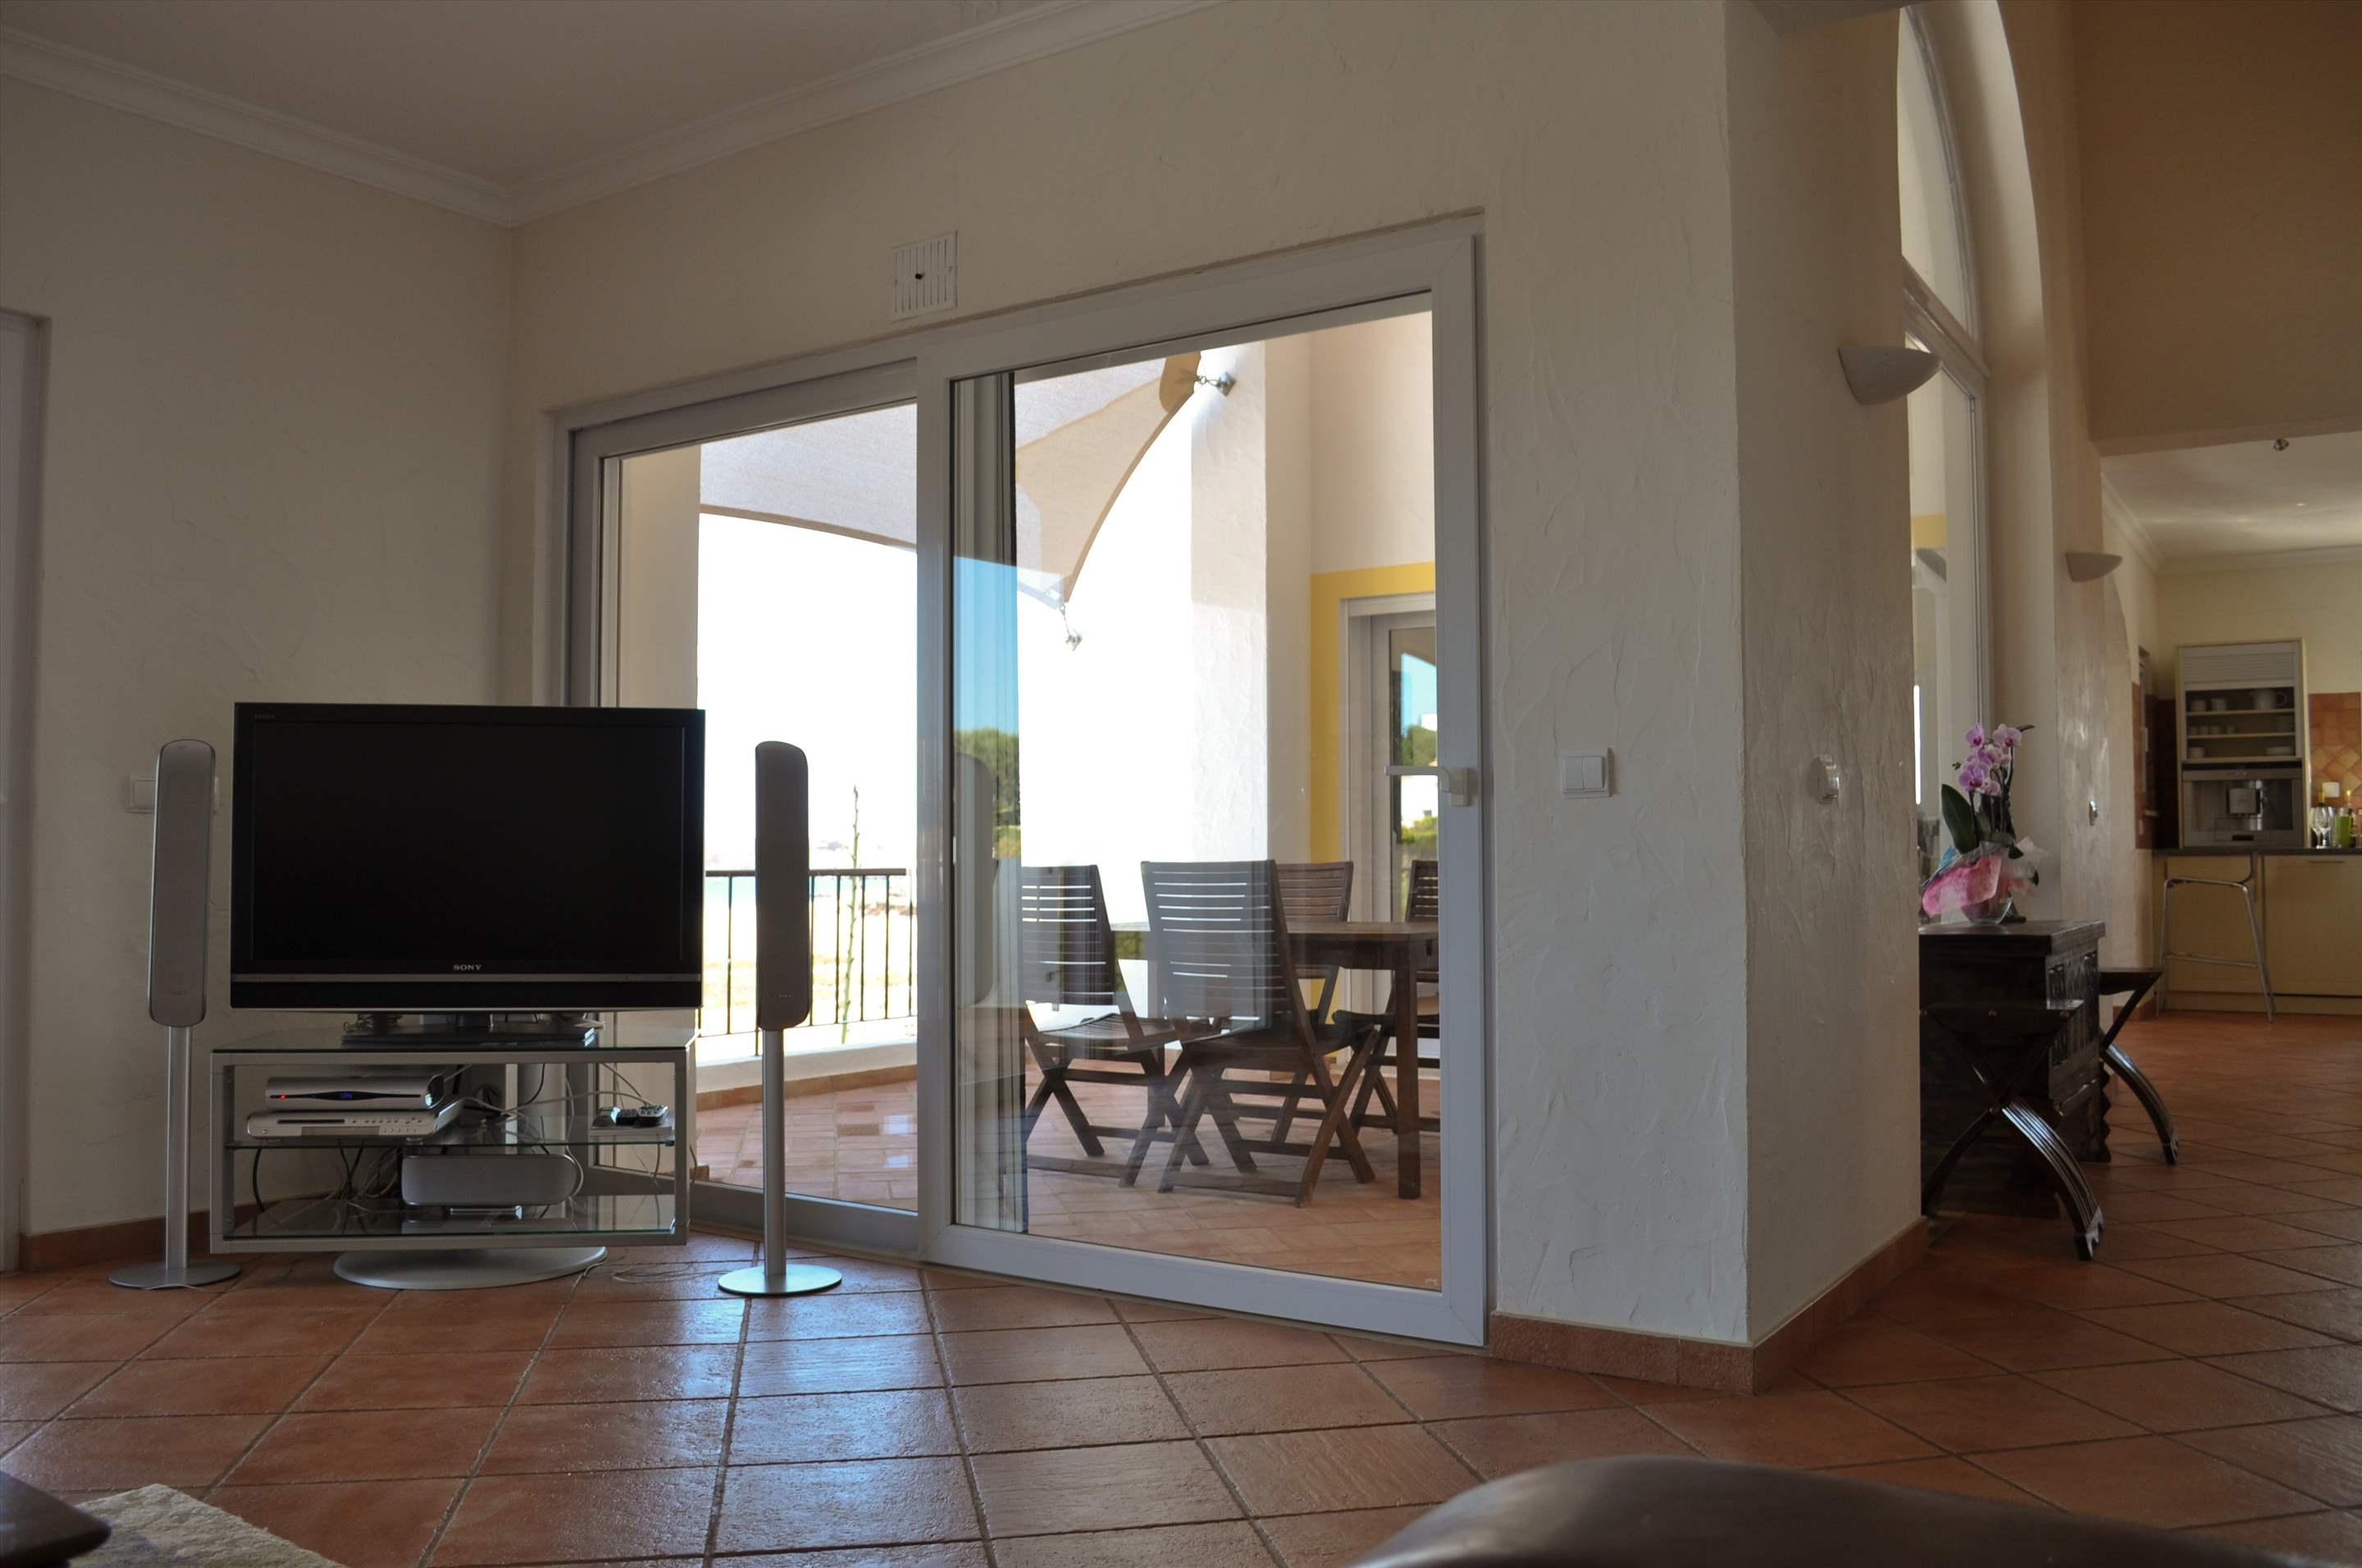 Martinhal Luxury Villa No.38, 3 bedroom villa in Martinhal Sagres, Algarve Photo #3